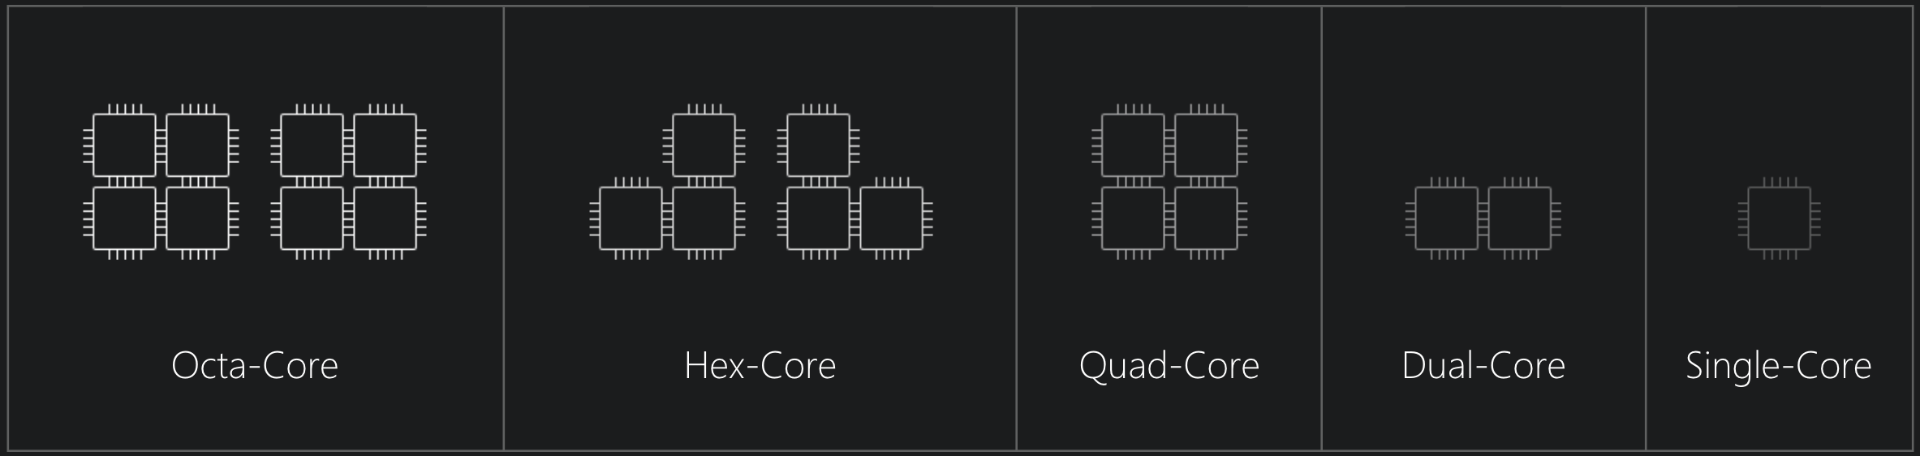 Octa-Core comparison chart